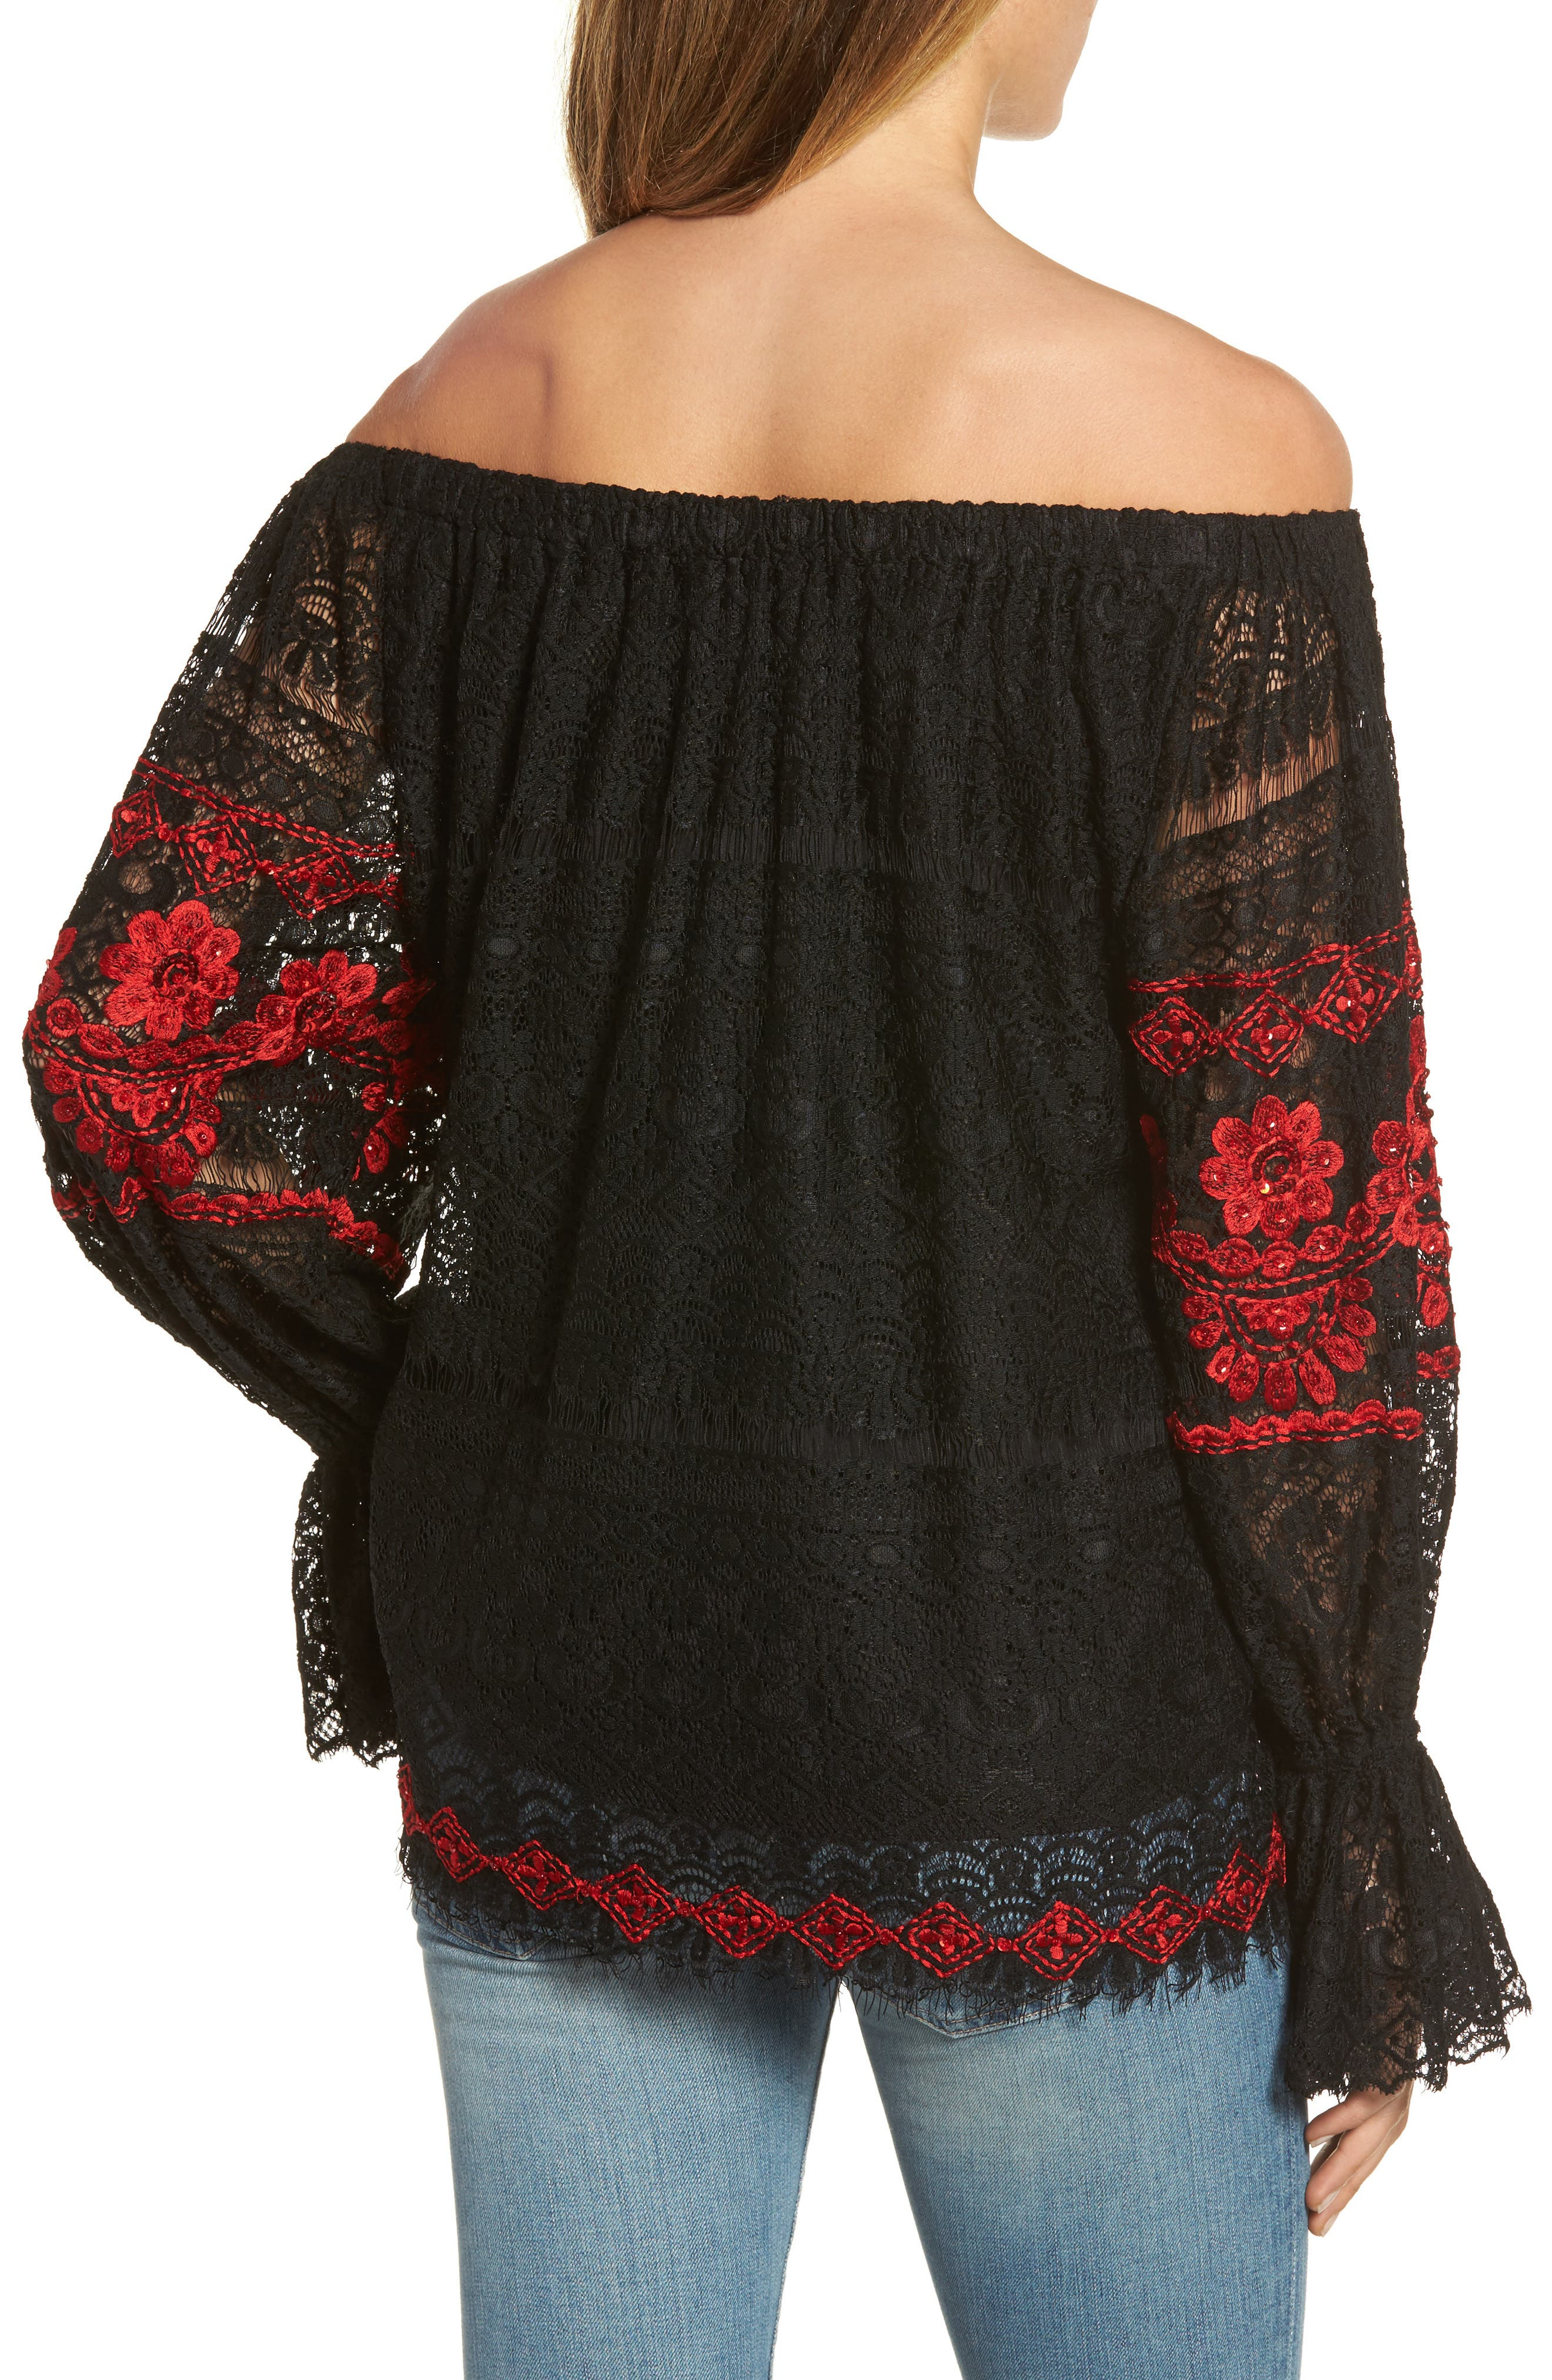 Clare Off the Shoulder Lace Top,                             Alternate thumbnail 2, color,                             Black